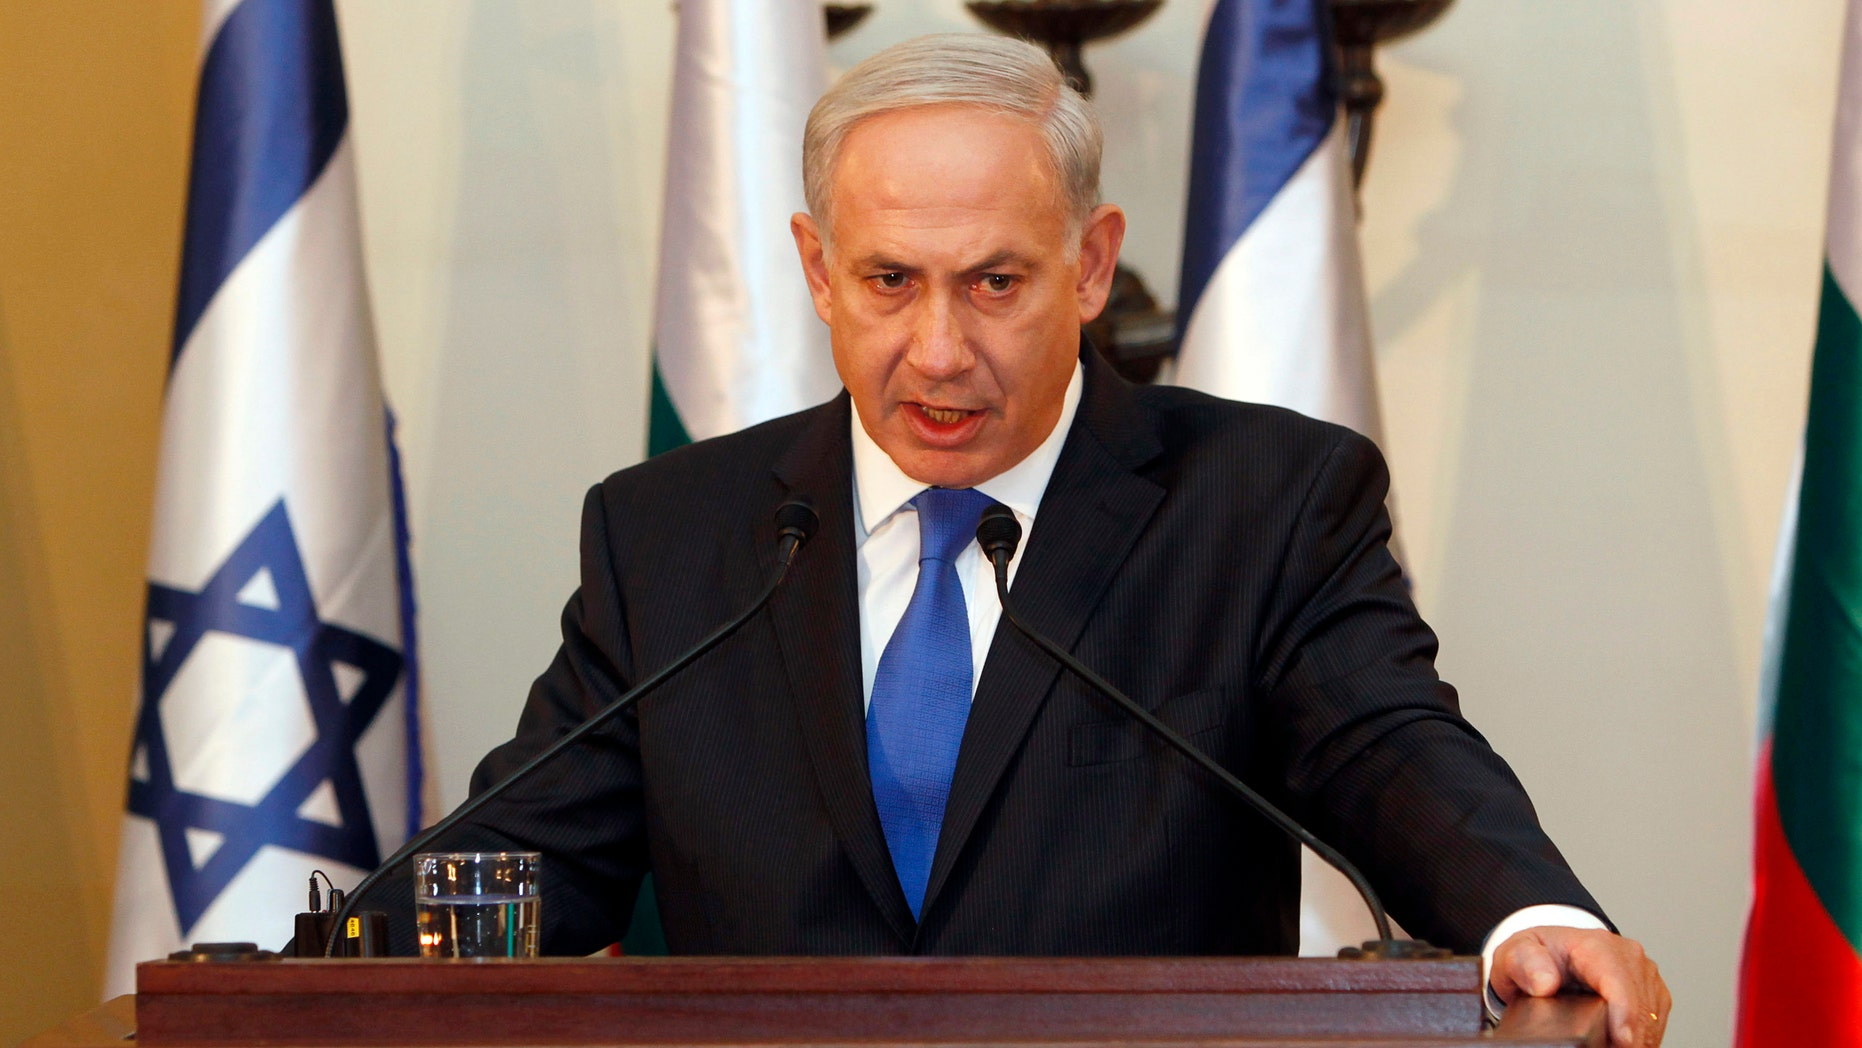 FILE: Sept. 11, 2012: Israeli Prime Minister Benjamin Netanyahu speaks at a press conference Jerusalem.